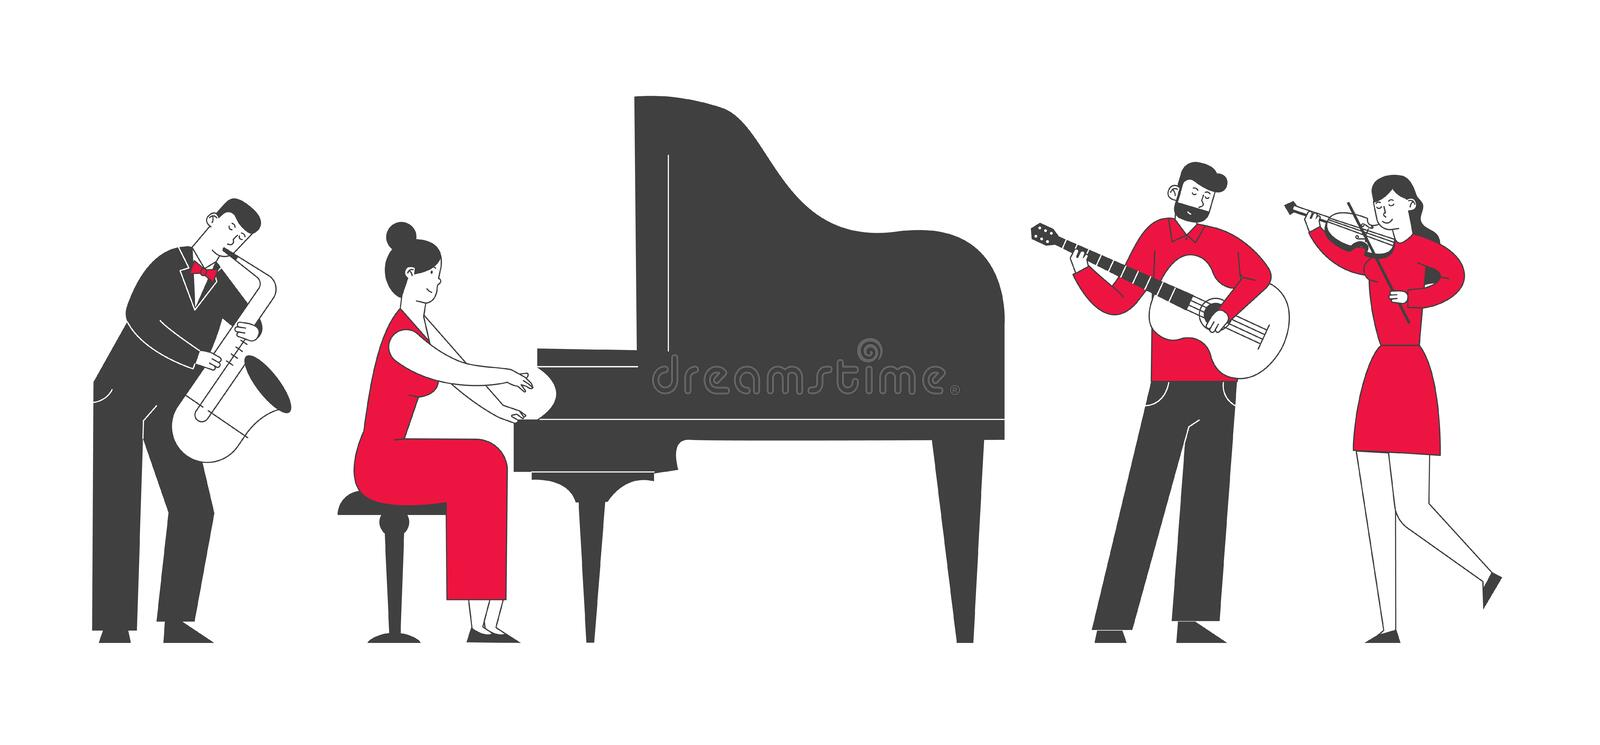 Musicians with Instruments Perform on Stage Symphony. Orchestra Playing Classical or Jazz Concert on Philharmonic Scene stock illustration